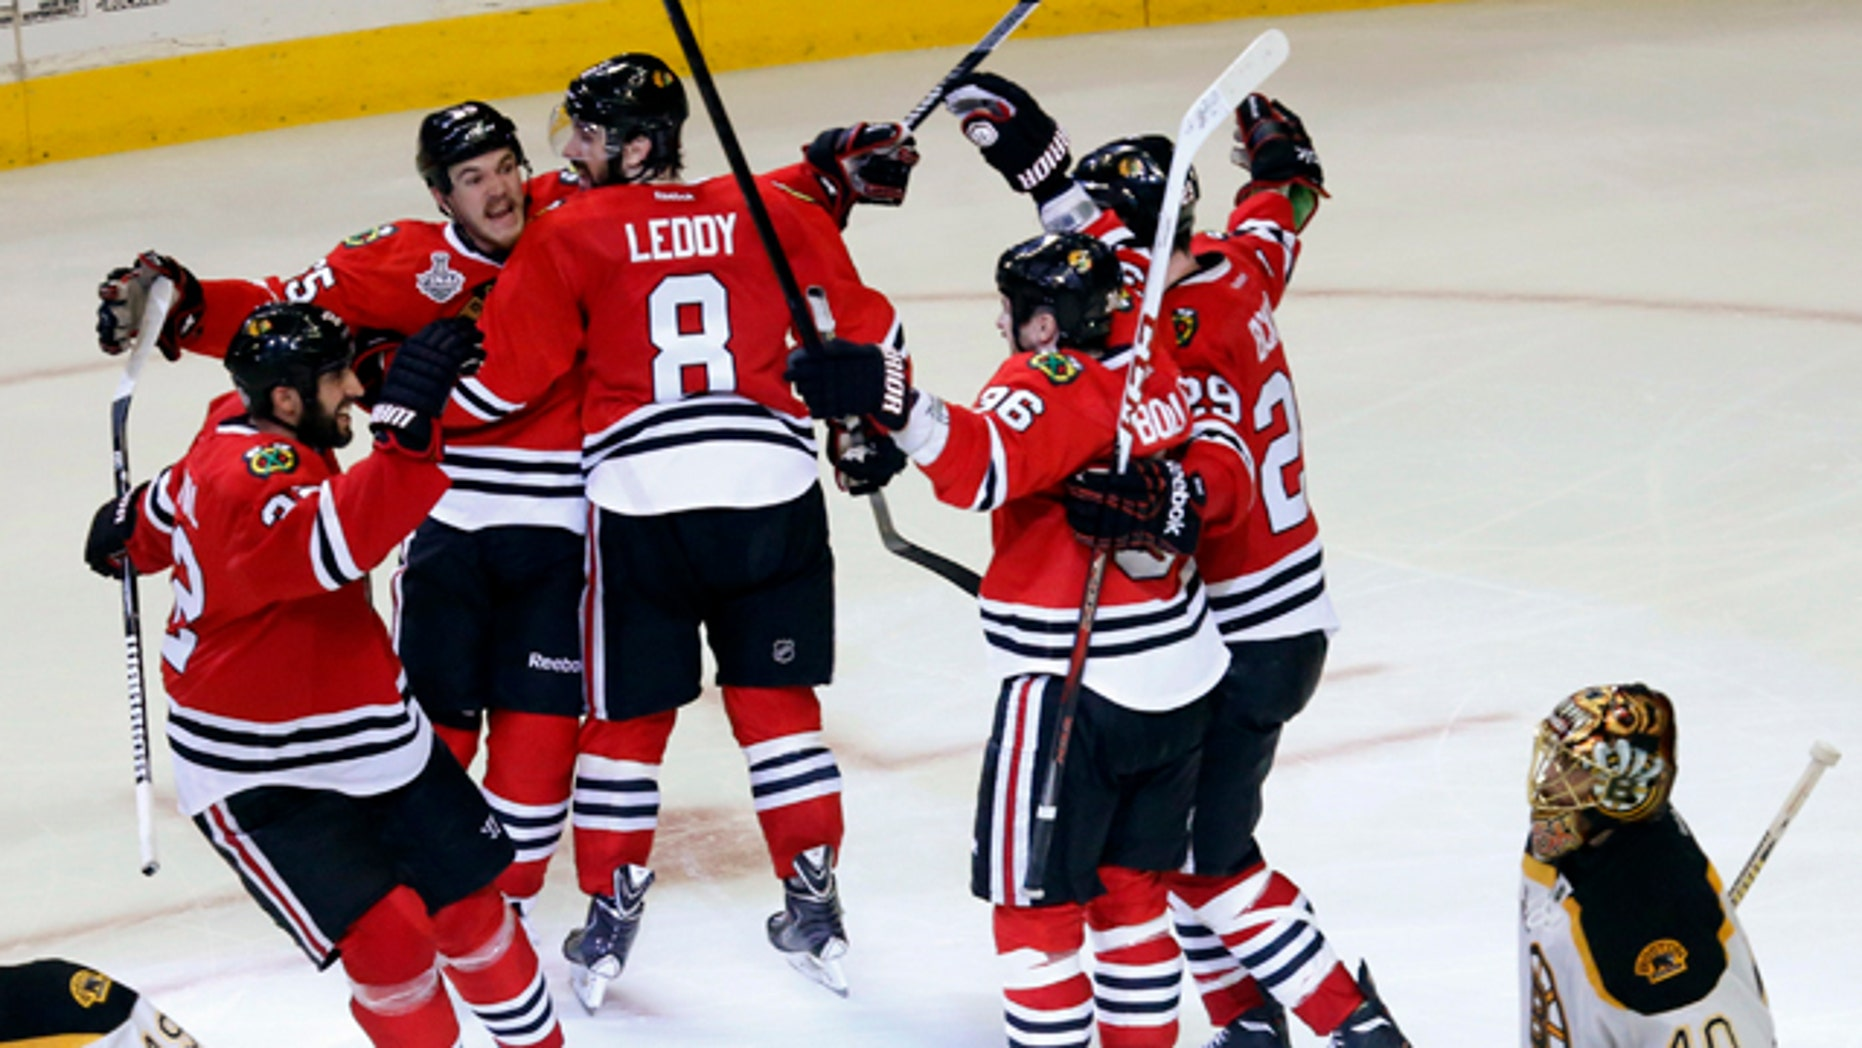 June 13, 2013: Chicago Blackhawks center Andrew Shaw, second from left, celebrates with his teammates after scoring the winning goal during the third overtime period of Game 1 in their NHL Stanley Cup Final hockey series against the Boston Bruins.